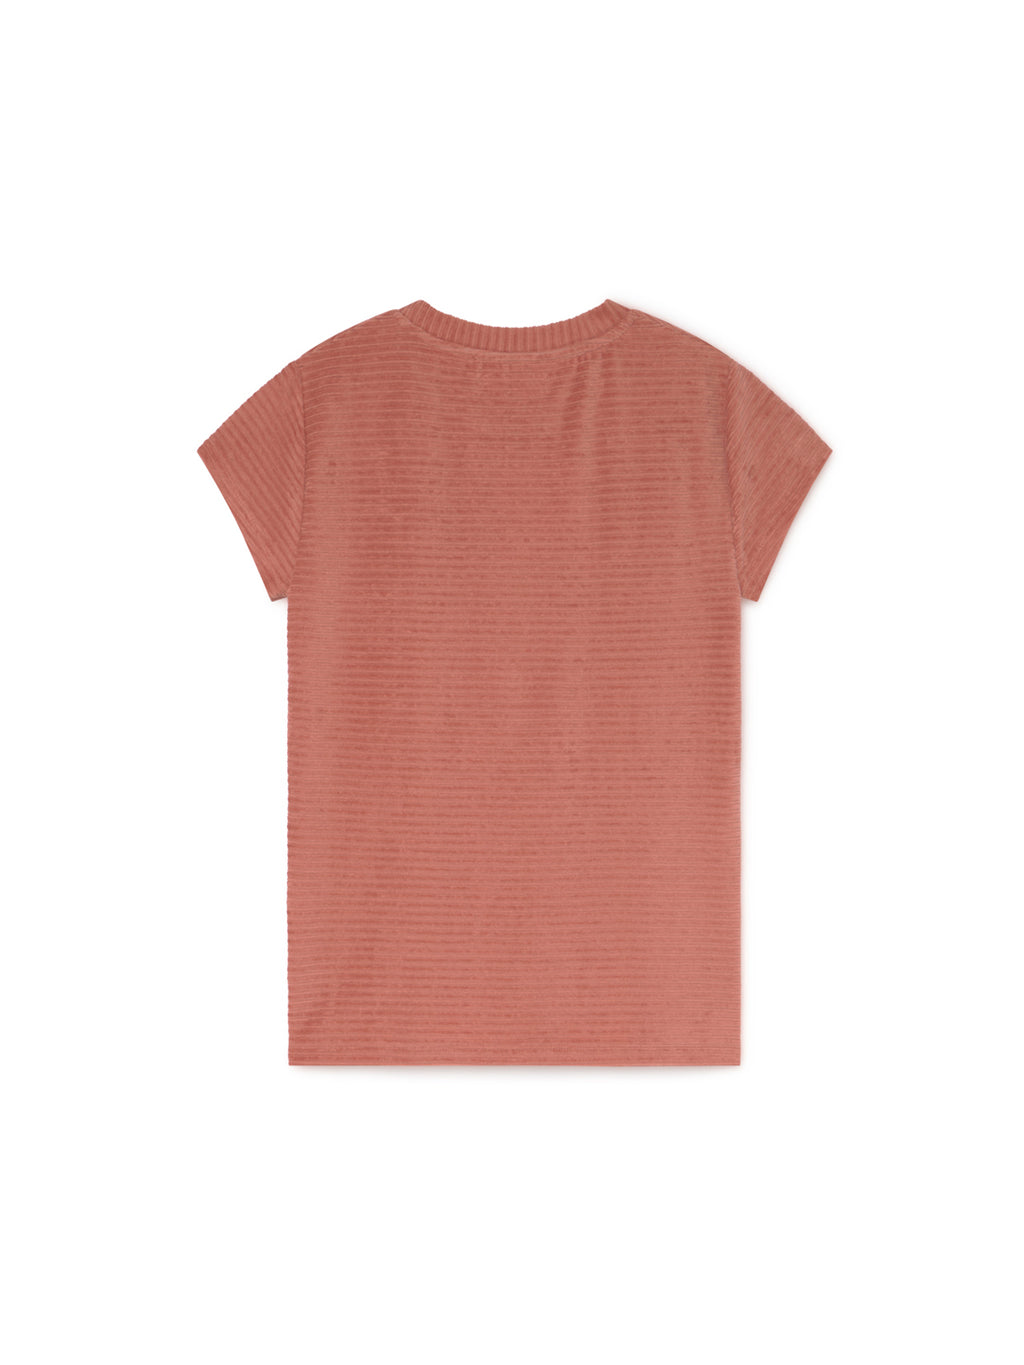 TWOTHIRDS Womens Top: Ariadna - Dusty Pink Back